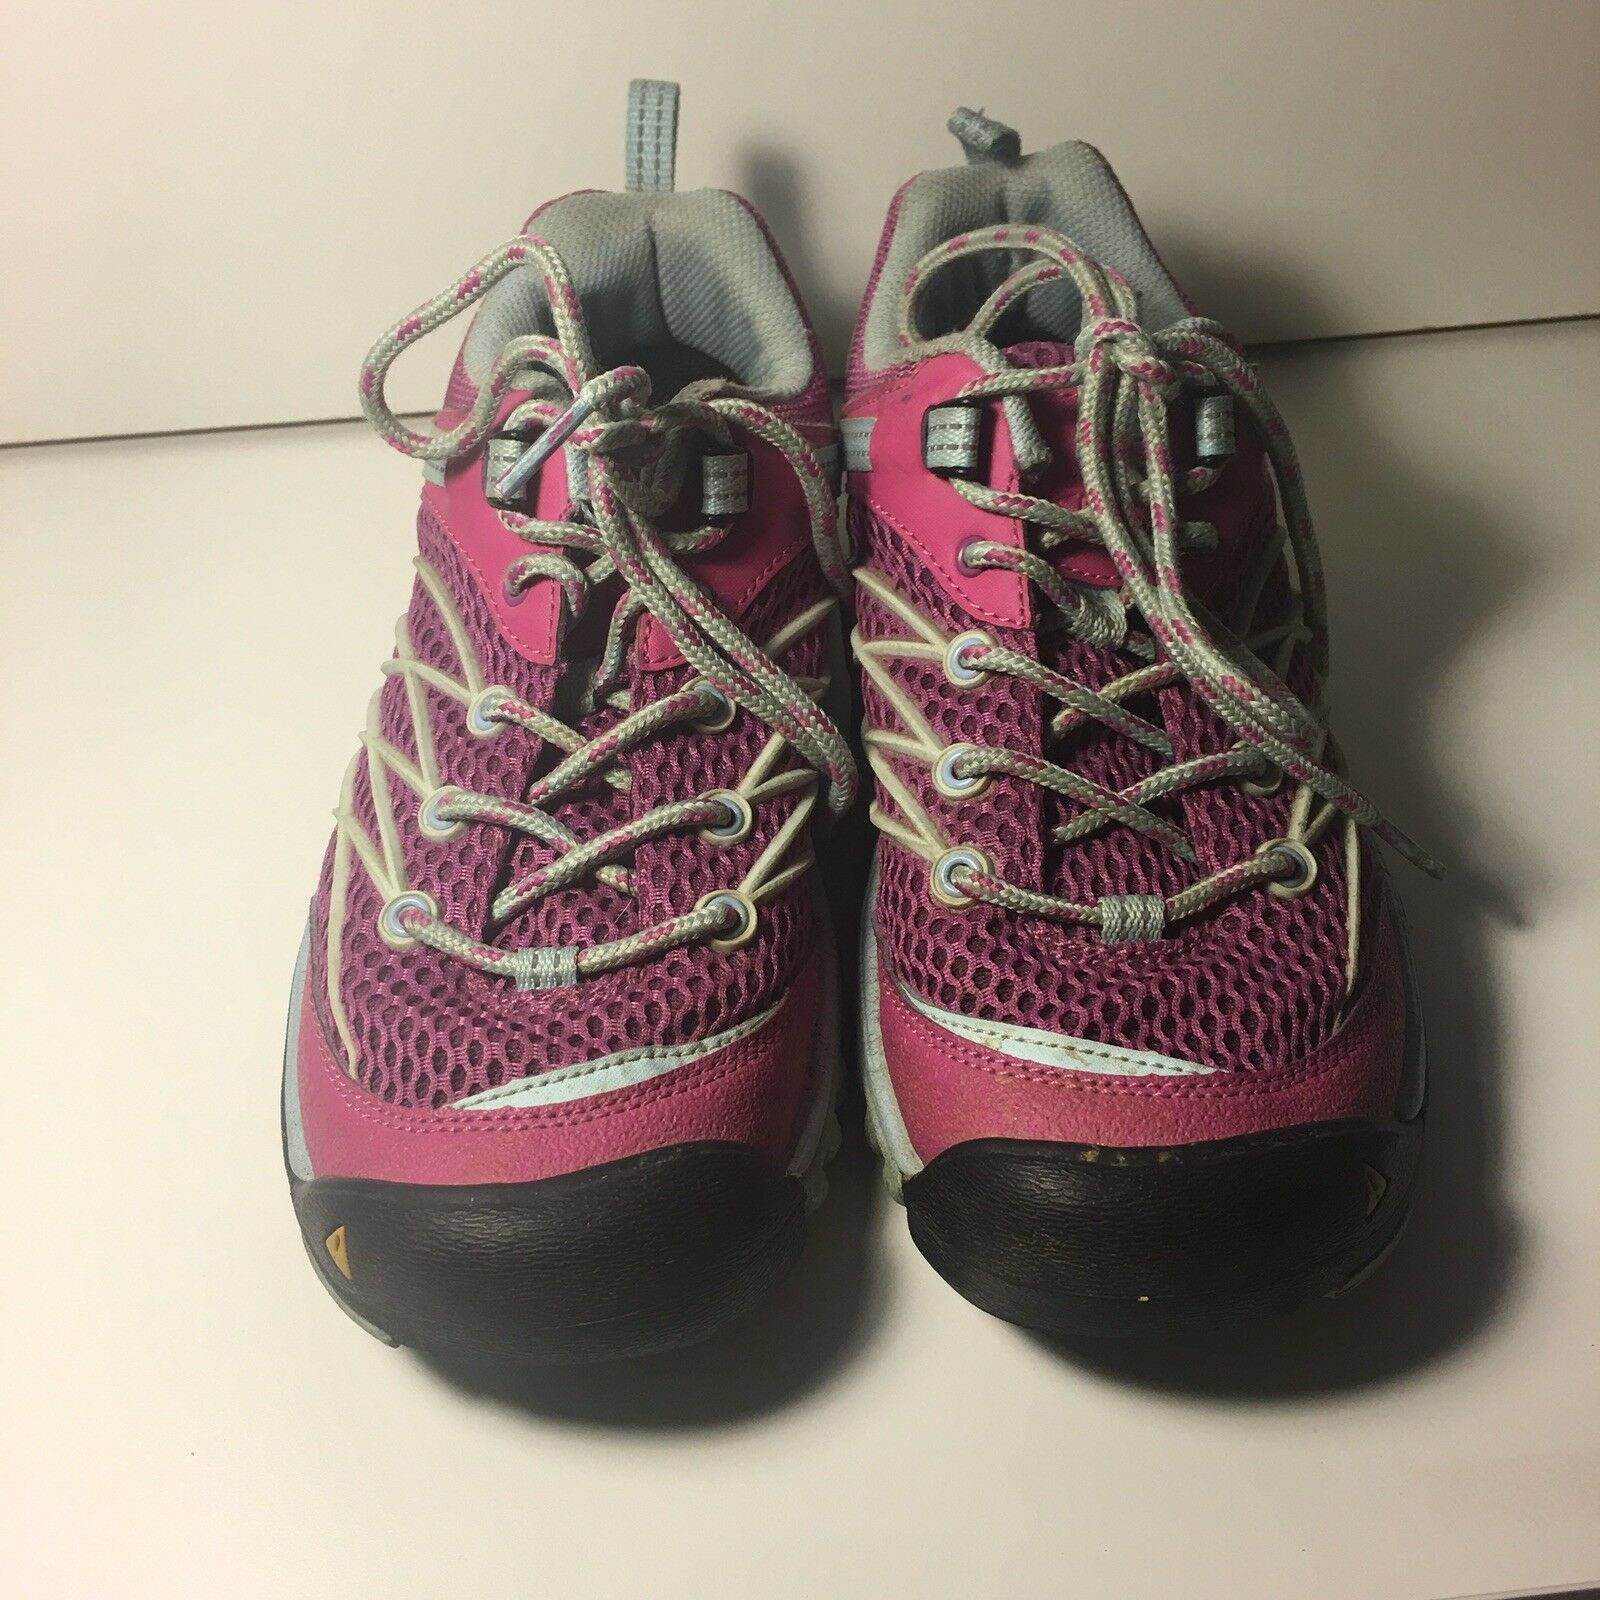 KEEN Women's Hiking Multicolord shoes SZ 7